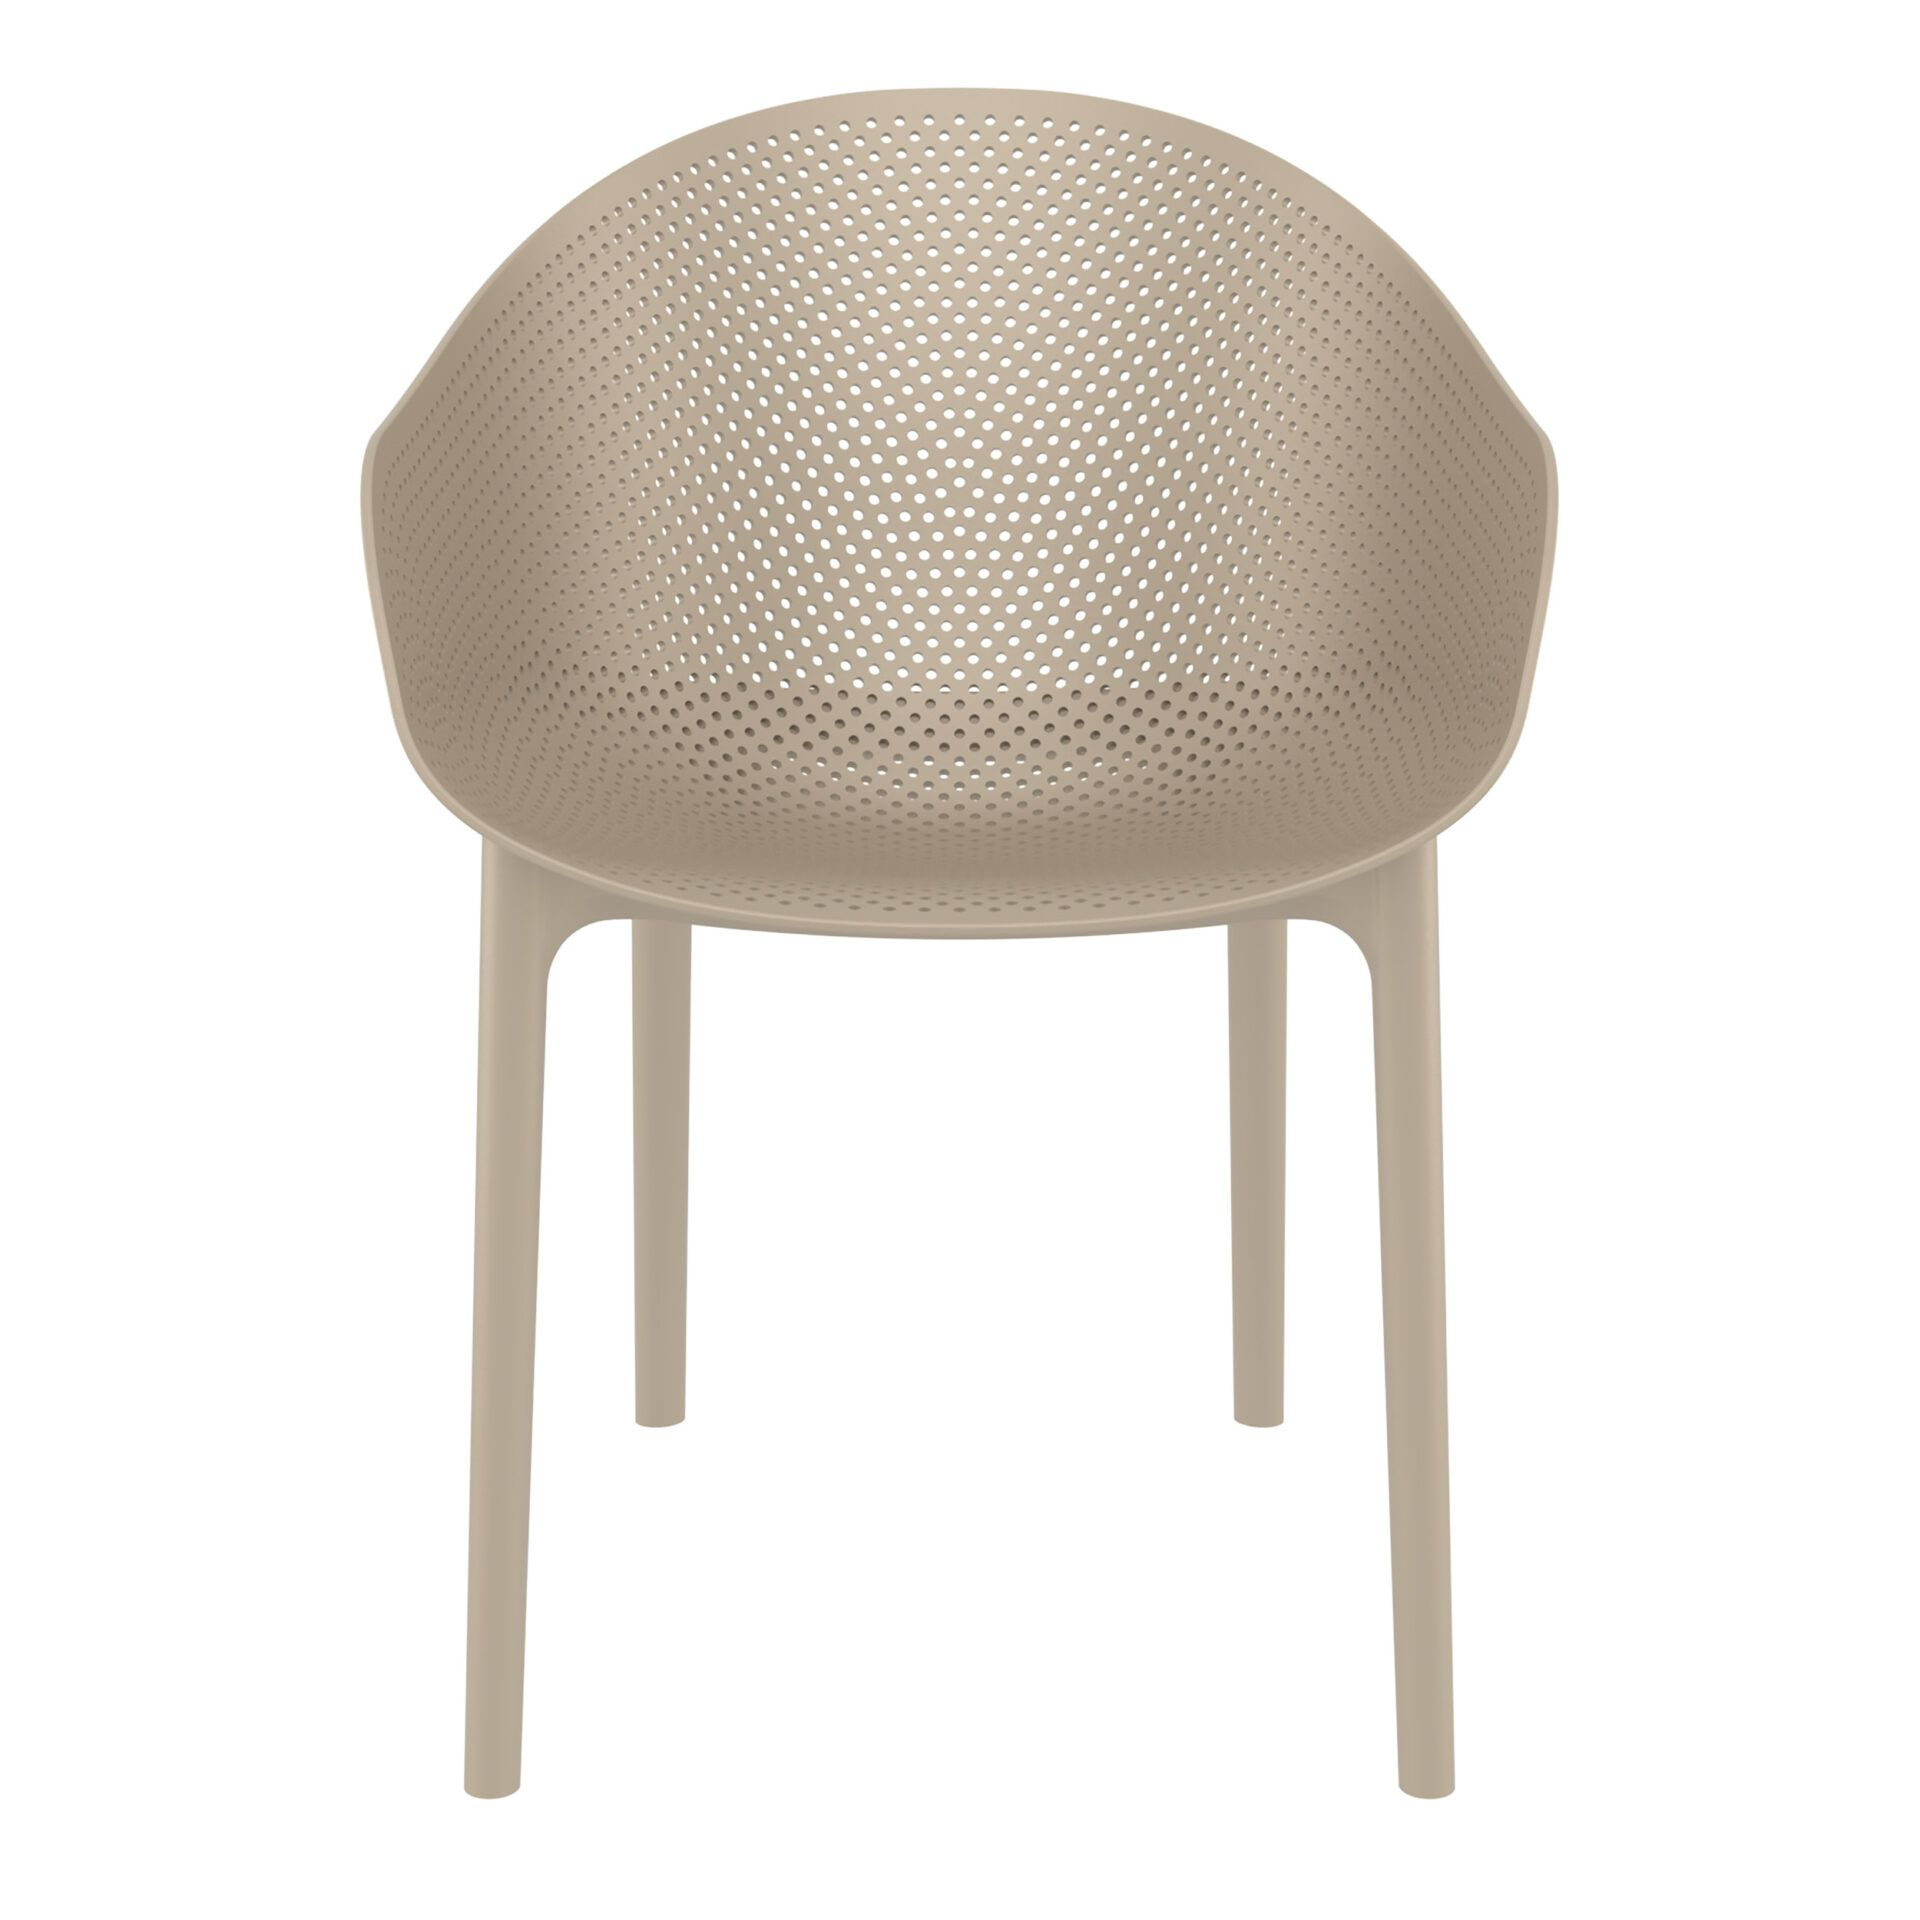 outdoor seating polypropylene sky chair taupe front